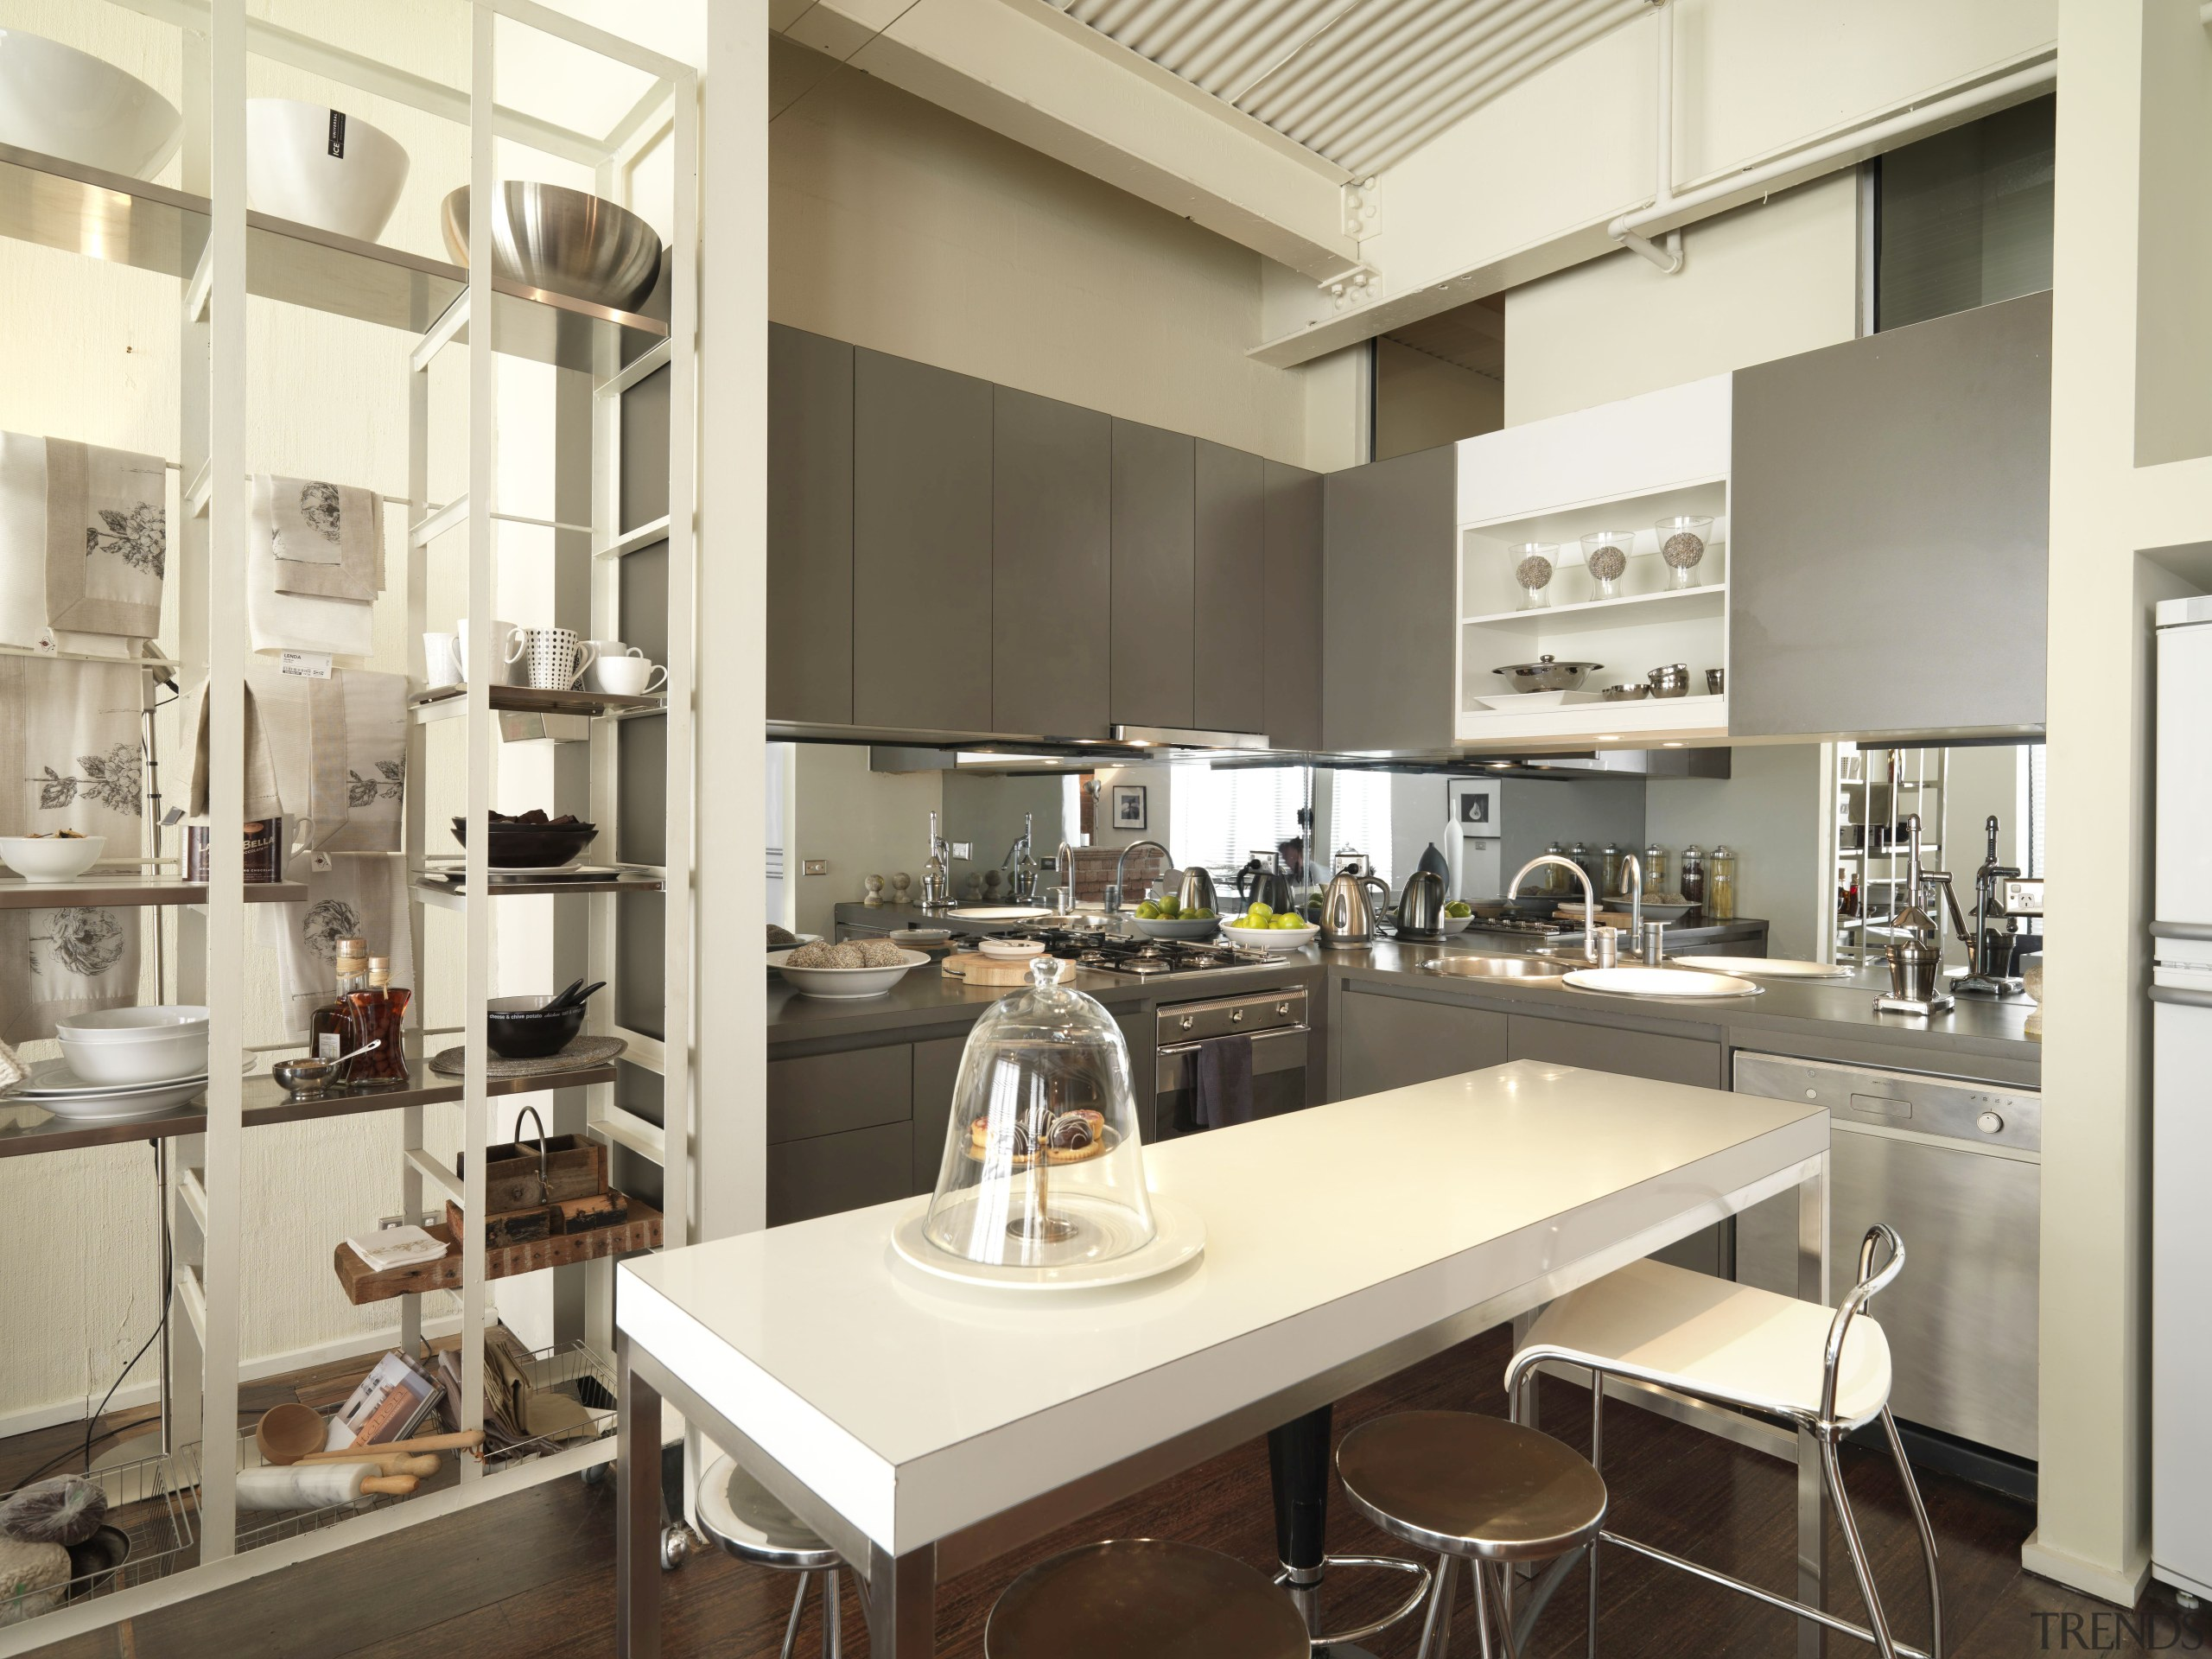 View of kitchen area with dark-stained timber flooring, countertop, interior design, kitchen, white, brown